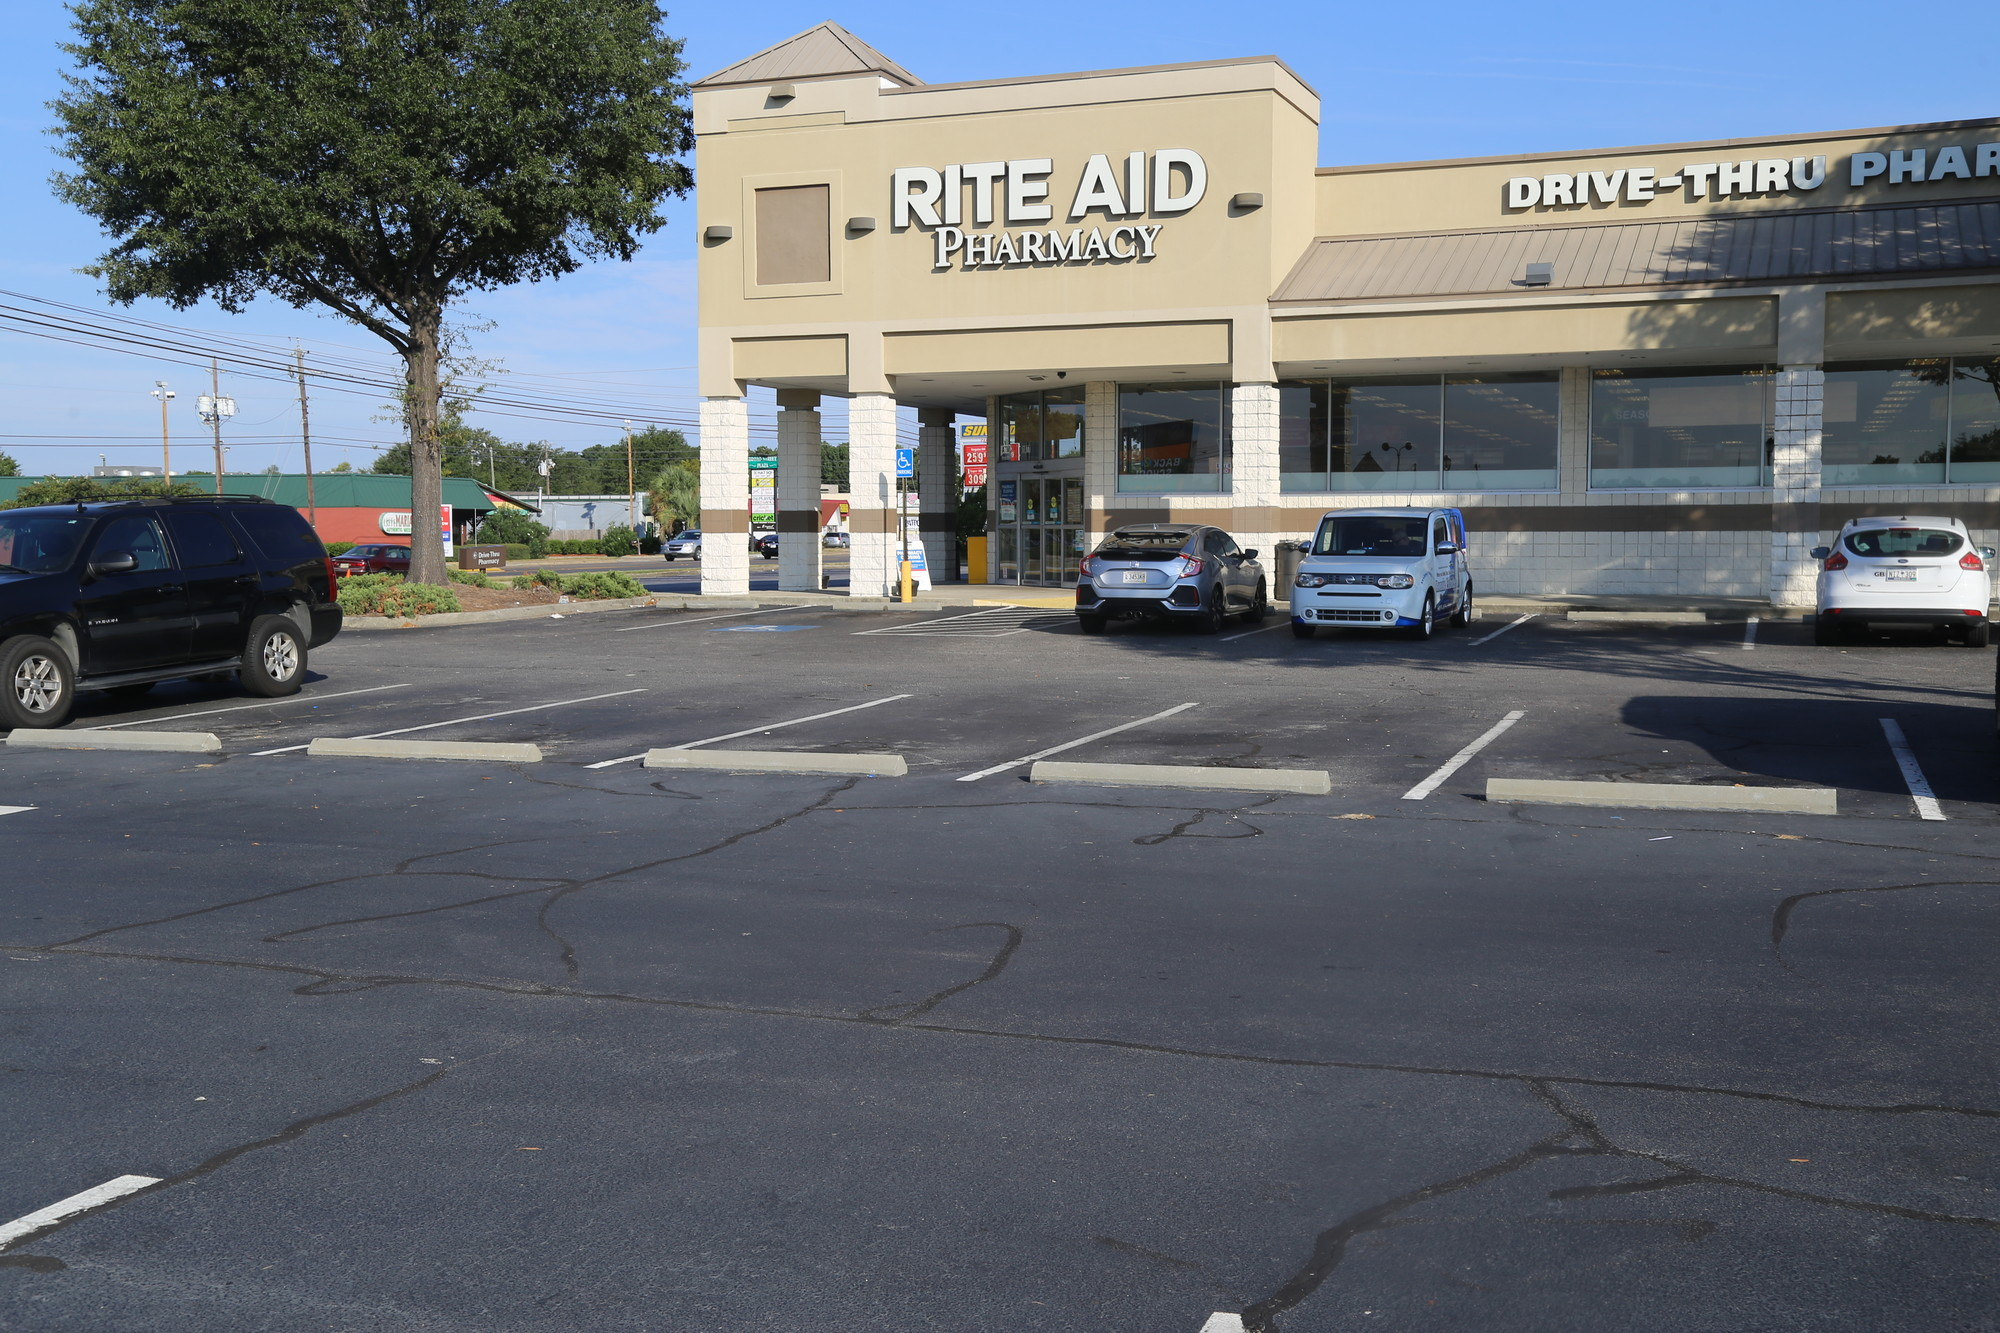 BRUCE MILLS / THE SUMTER ITEMThe pharmacy at Rite Aid, 1077 Broad St. and near Sumter Mall, is set to close Oct. 3. According to a store employee, the general merchandise area will close on or around Oct. 17.